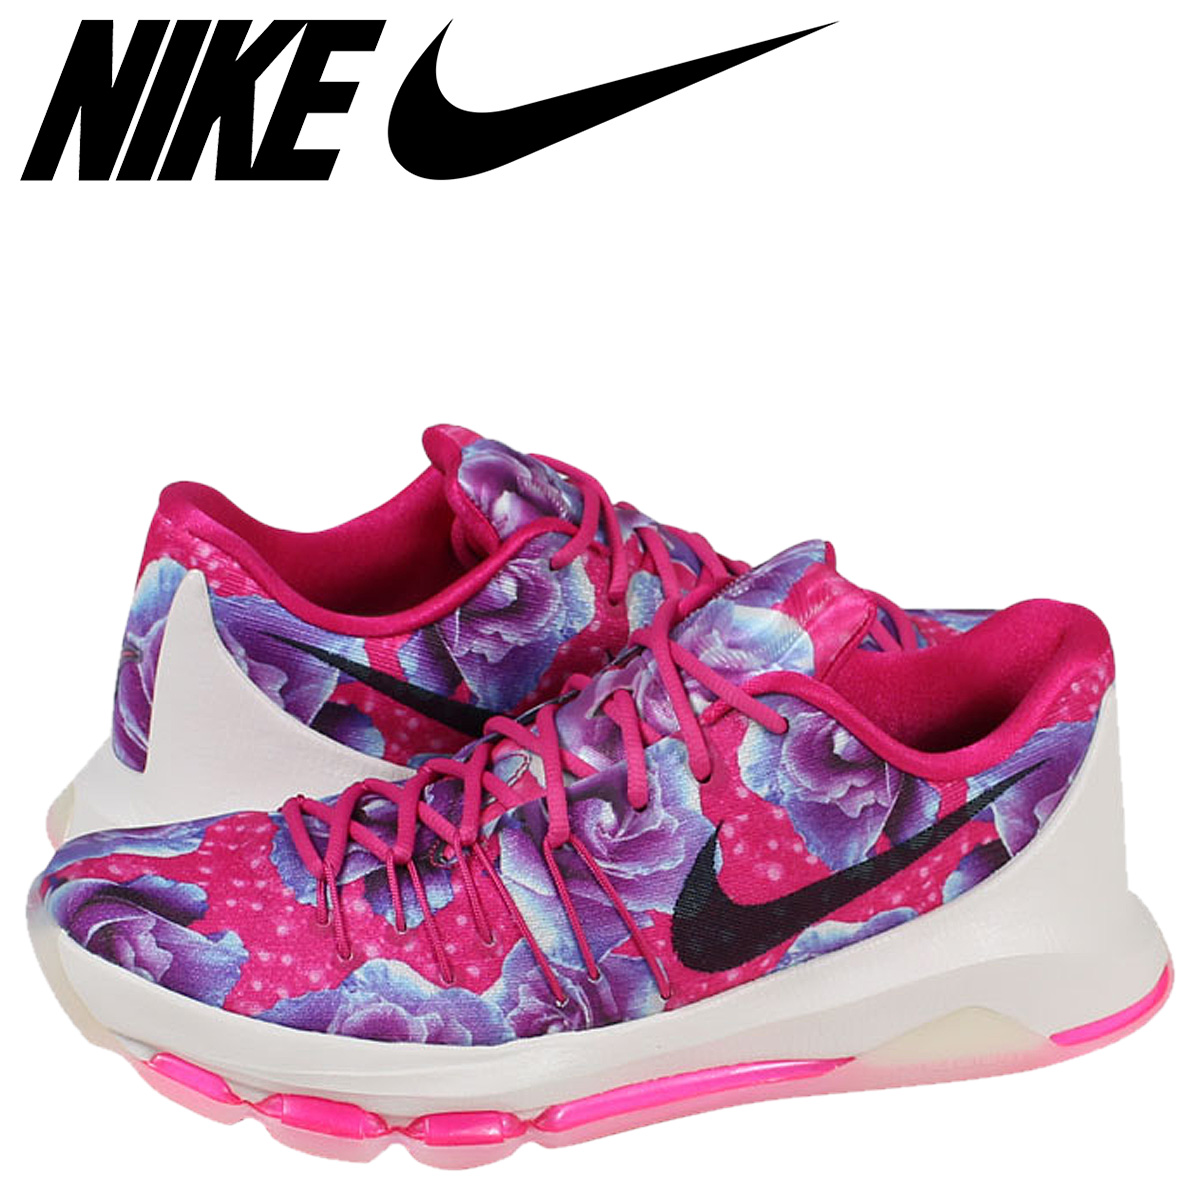 sports shoes b269d e2c4a Nike NIKE sneakers KD 8 AUNT PEARL 819,148-603 pink men